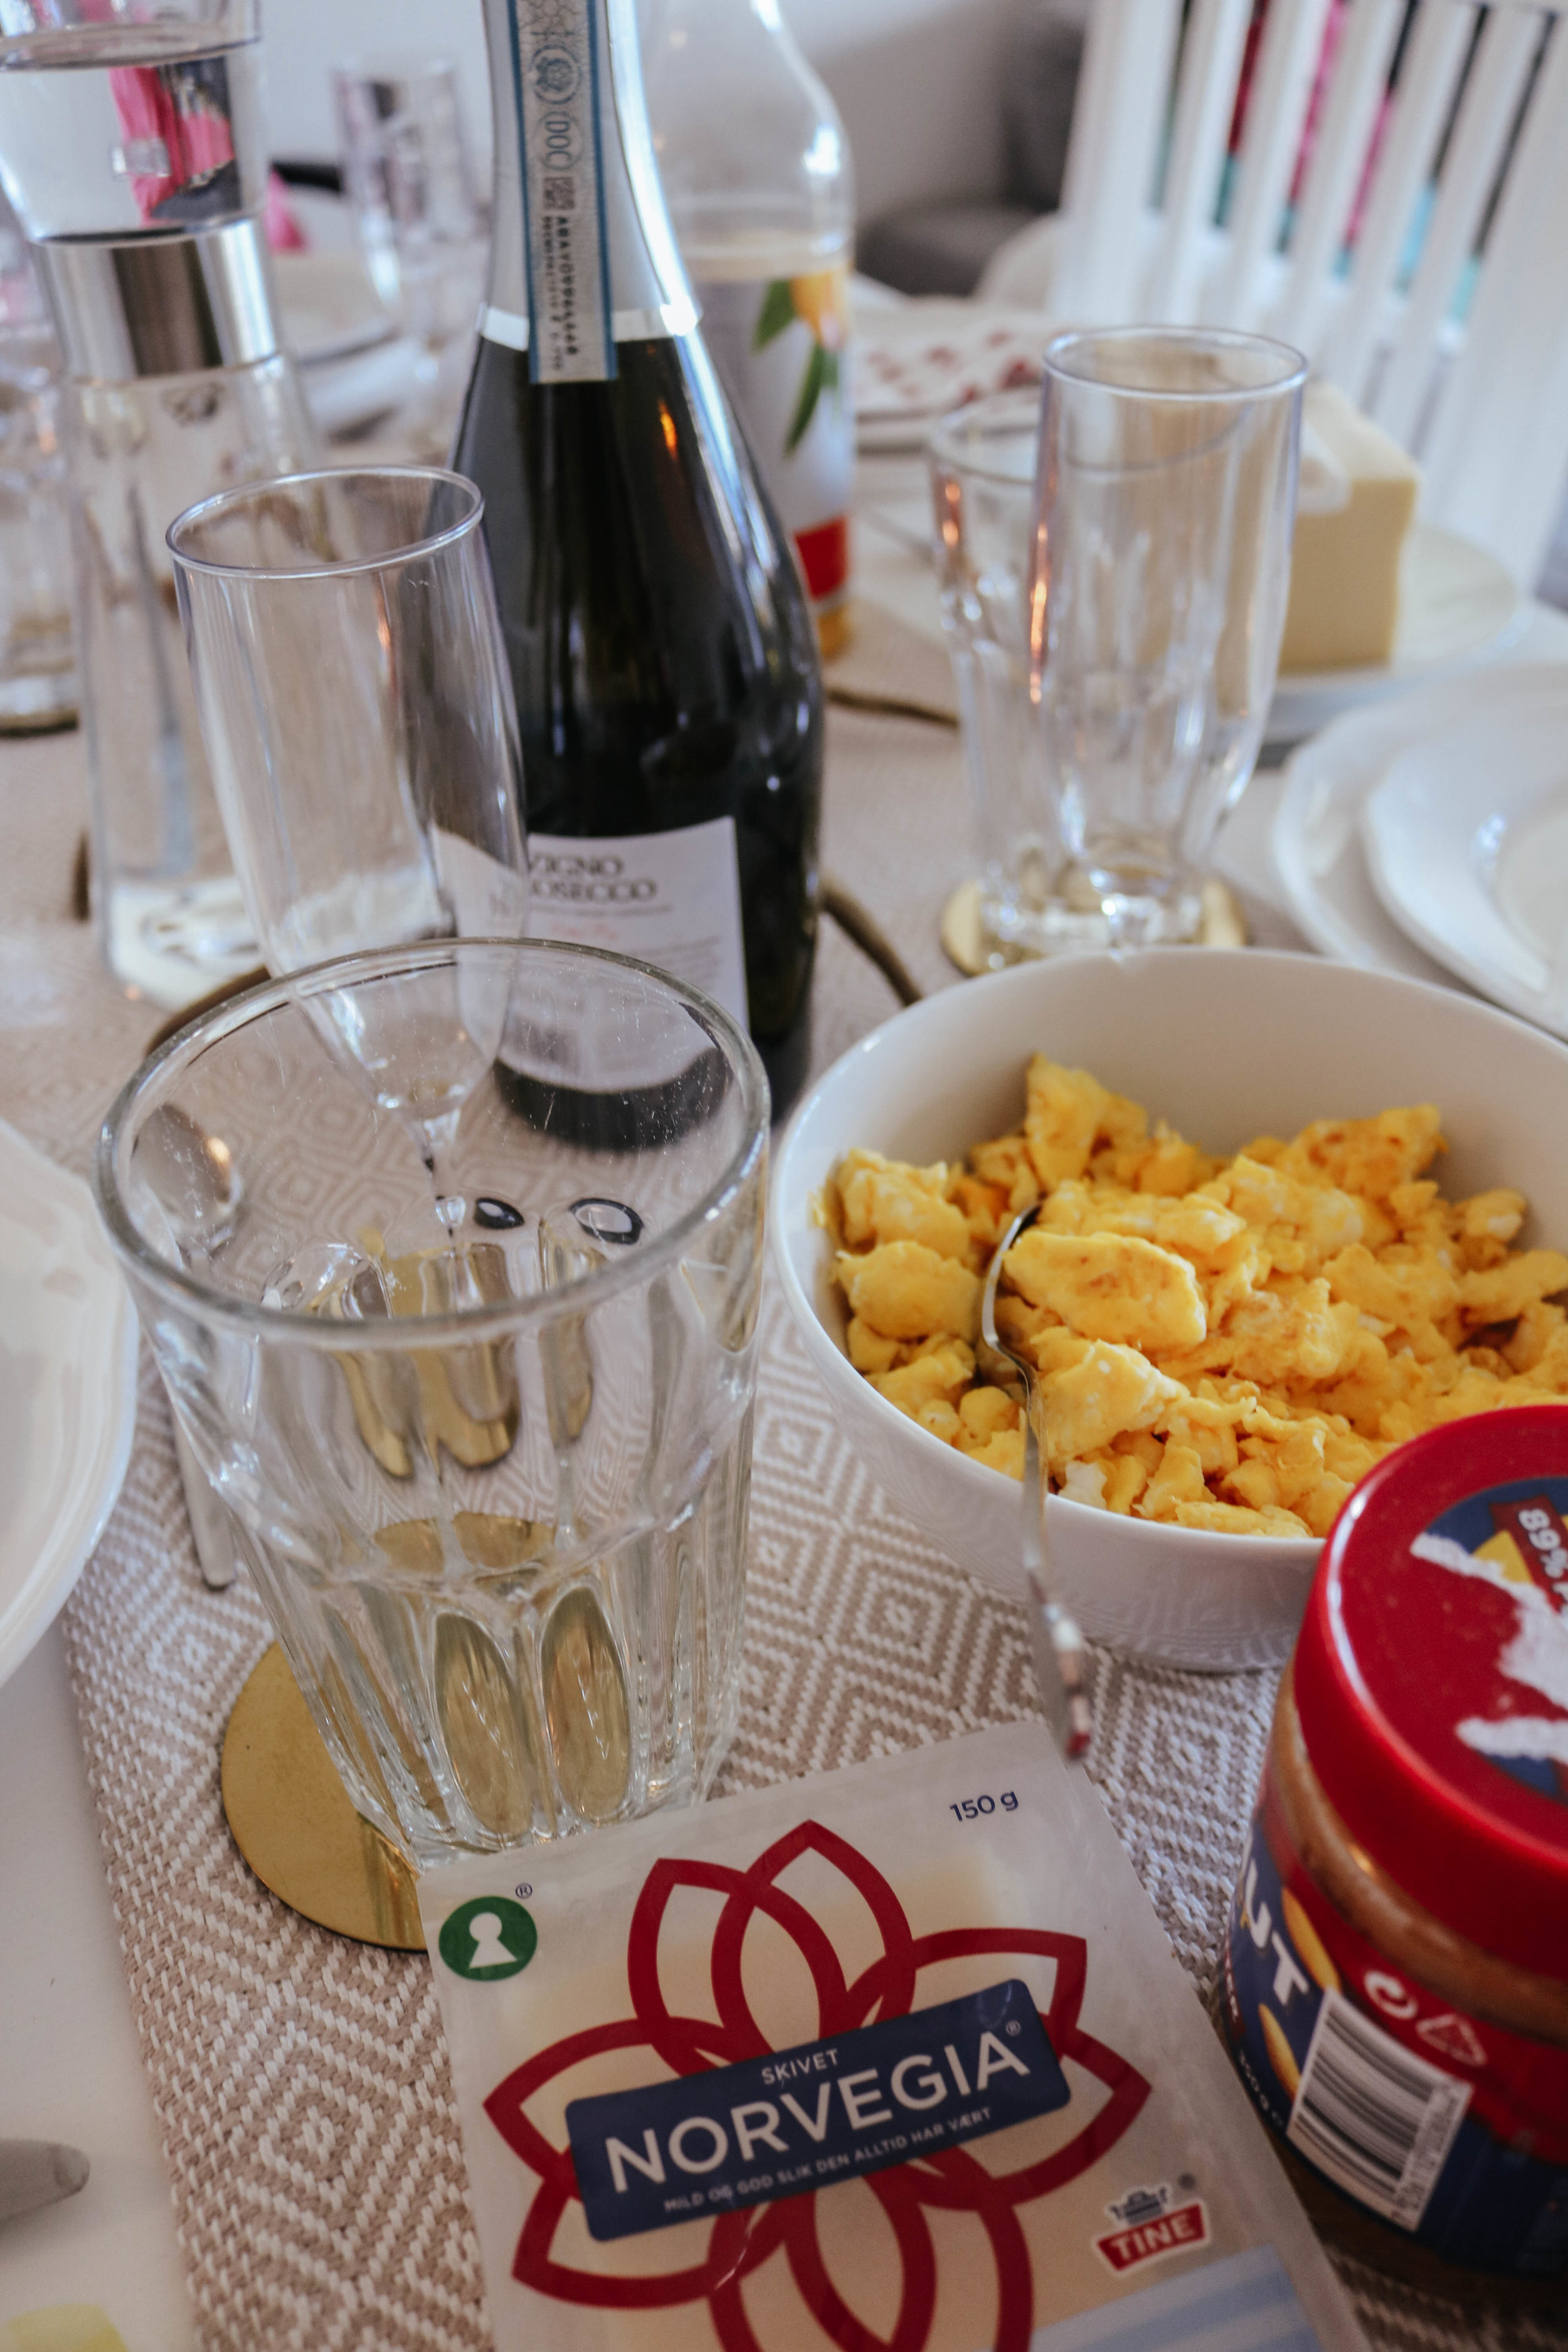 I've recently heard that champagne breakfasts are only for 20-somethings and people without kids - well, that's us!